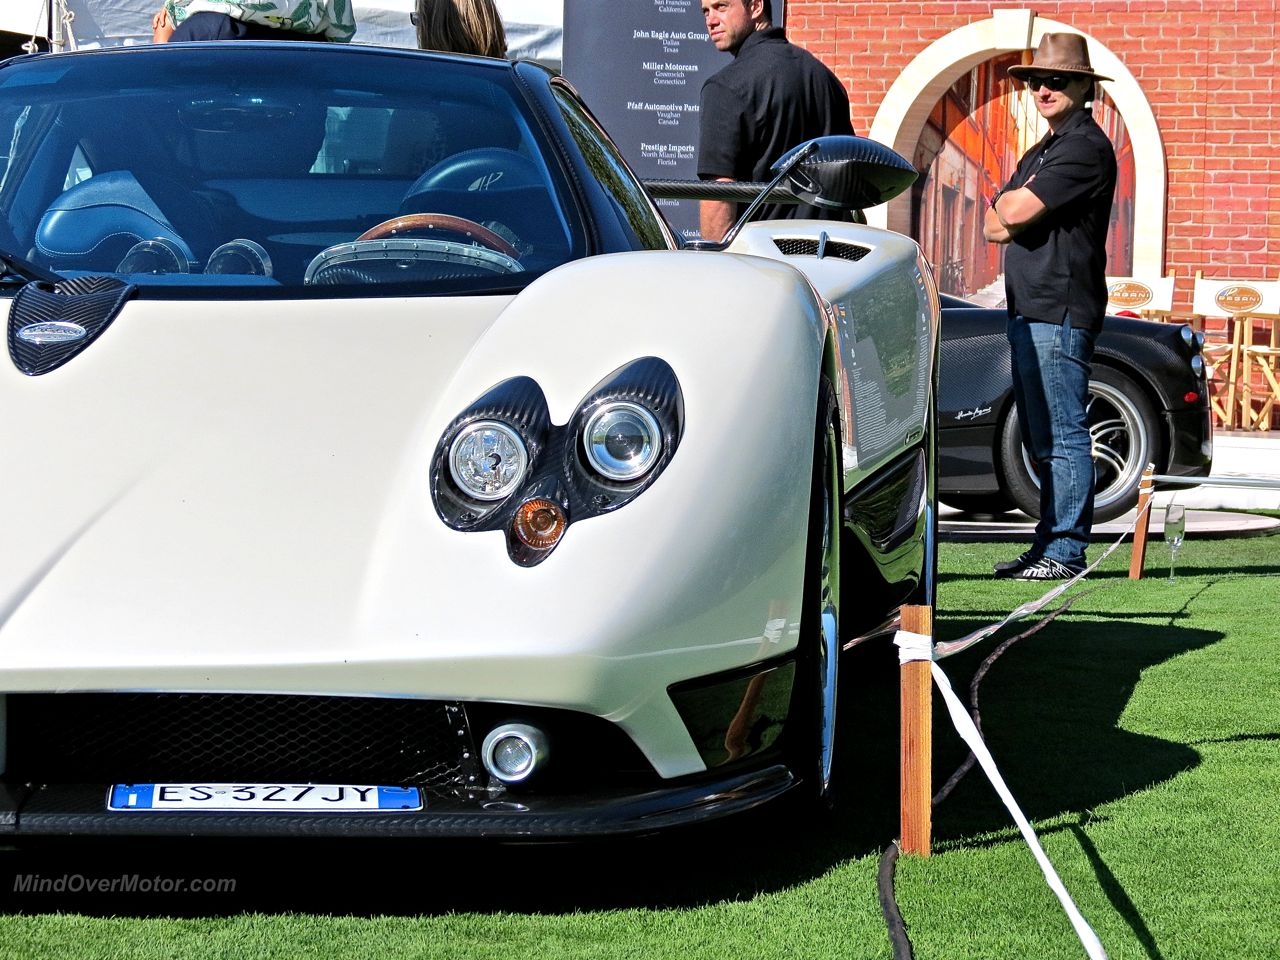 Horacio's Pagani Zonda F Headlight